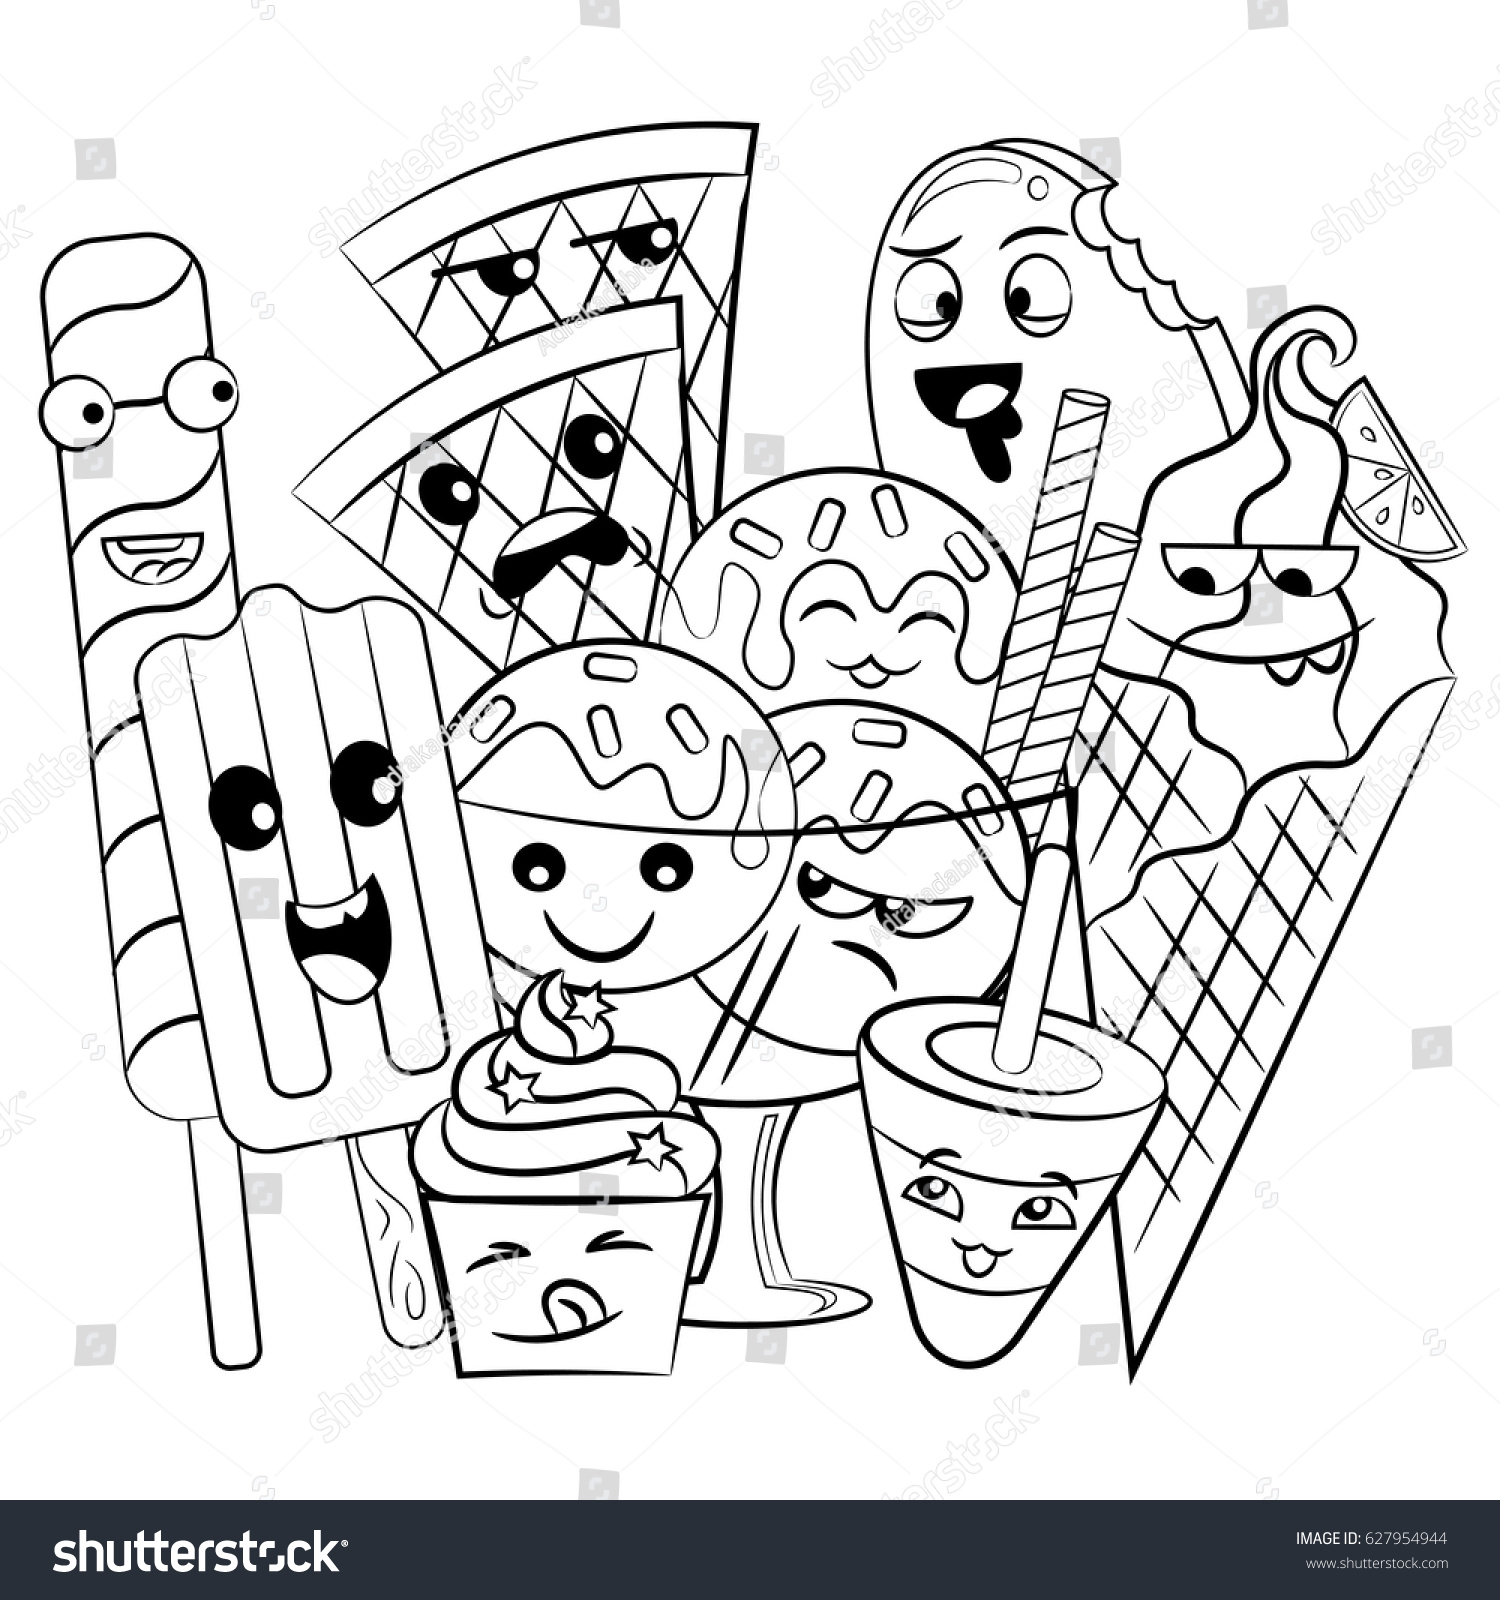 Black White Coloring Page Cute Sweet Food And Drink